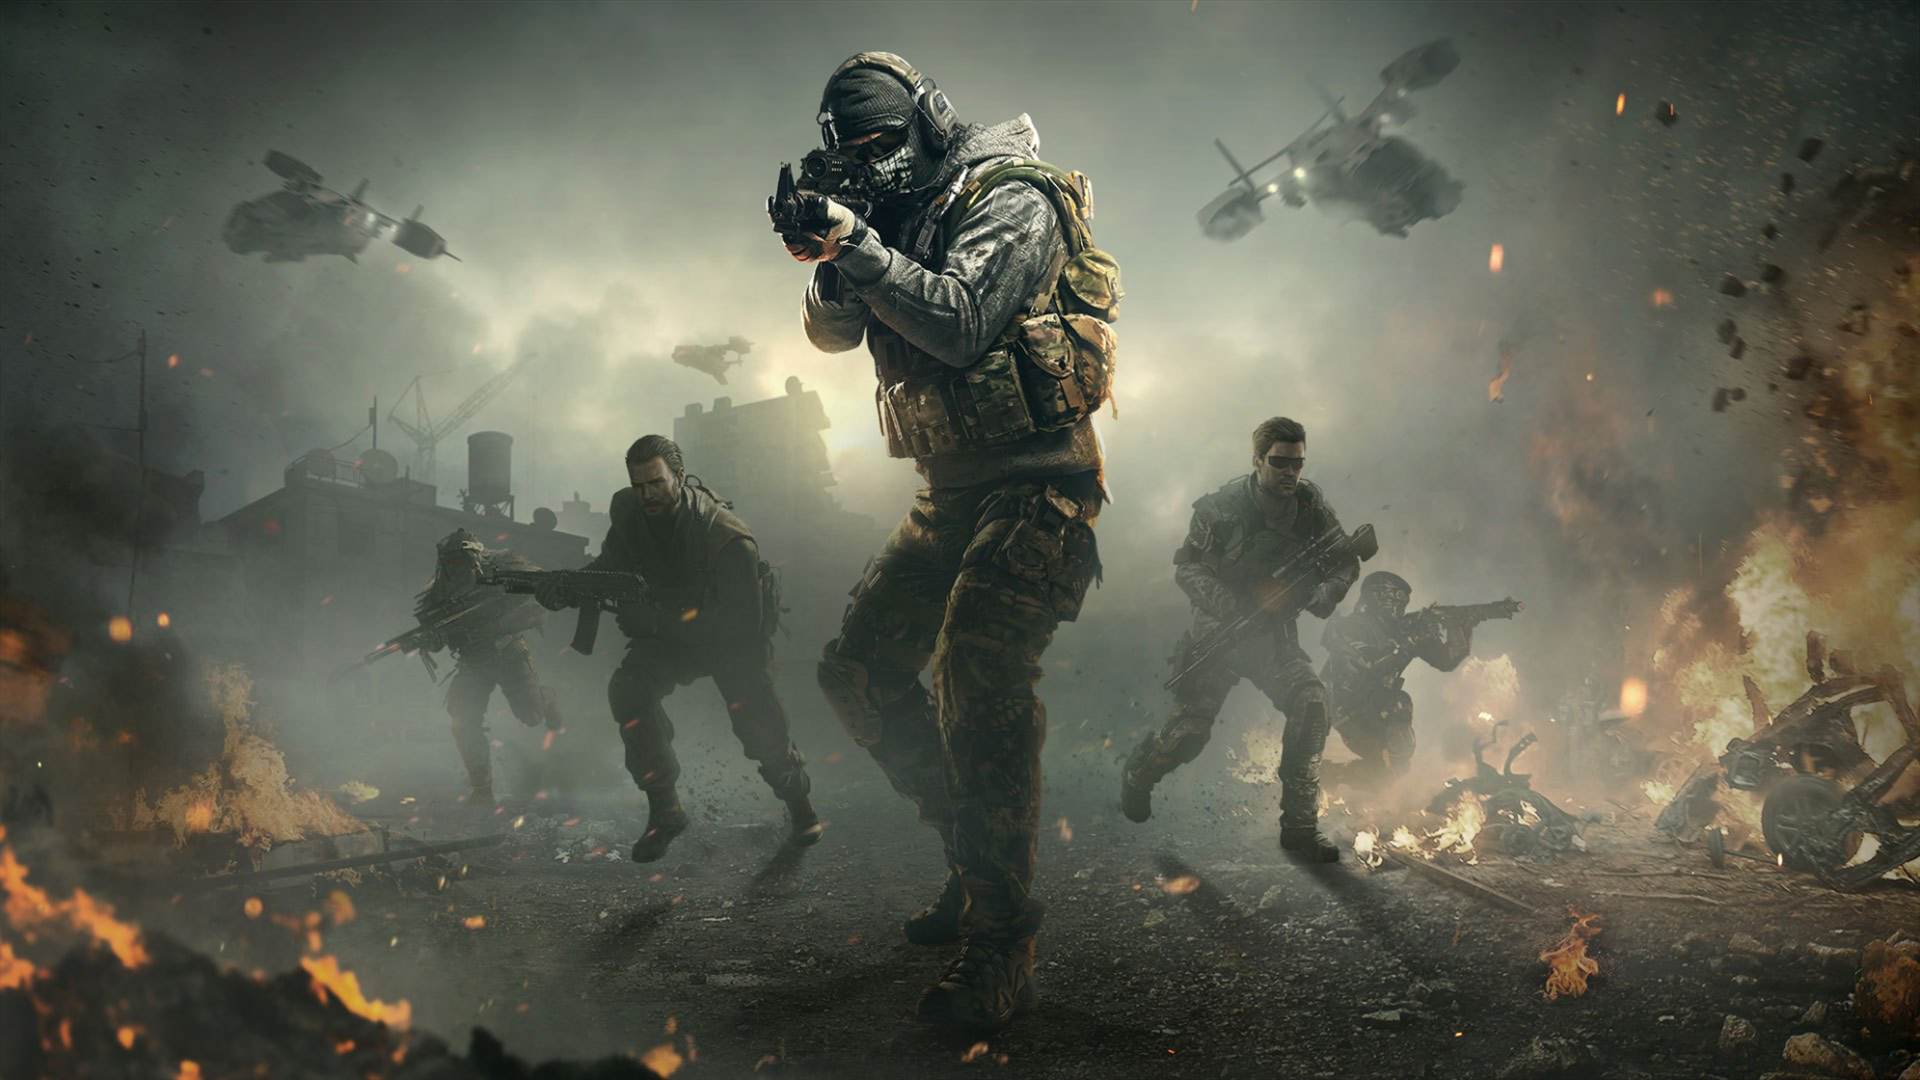 1920x1080 Call Of Duty Mobile 2019 1080p Laptop Full Hd